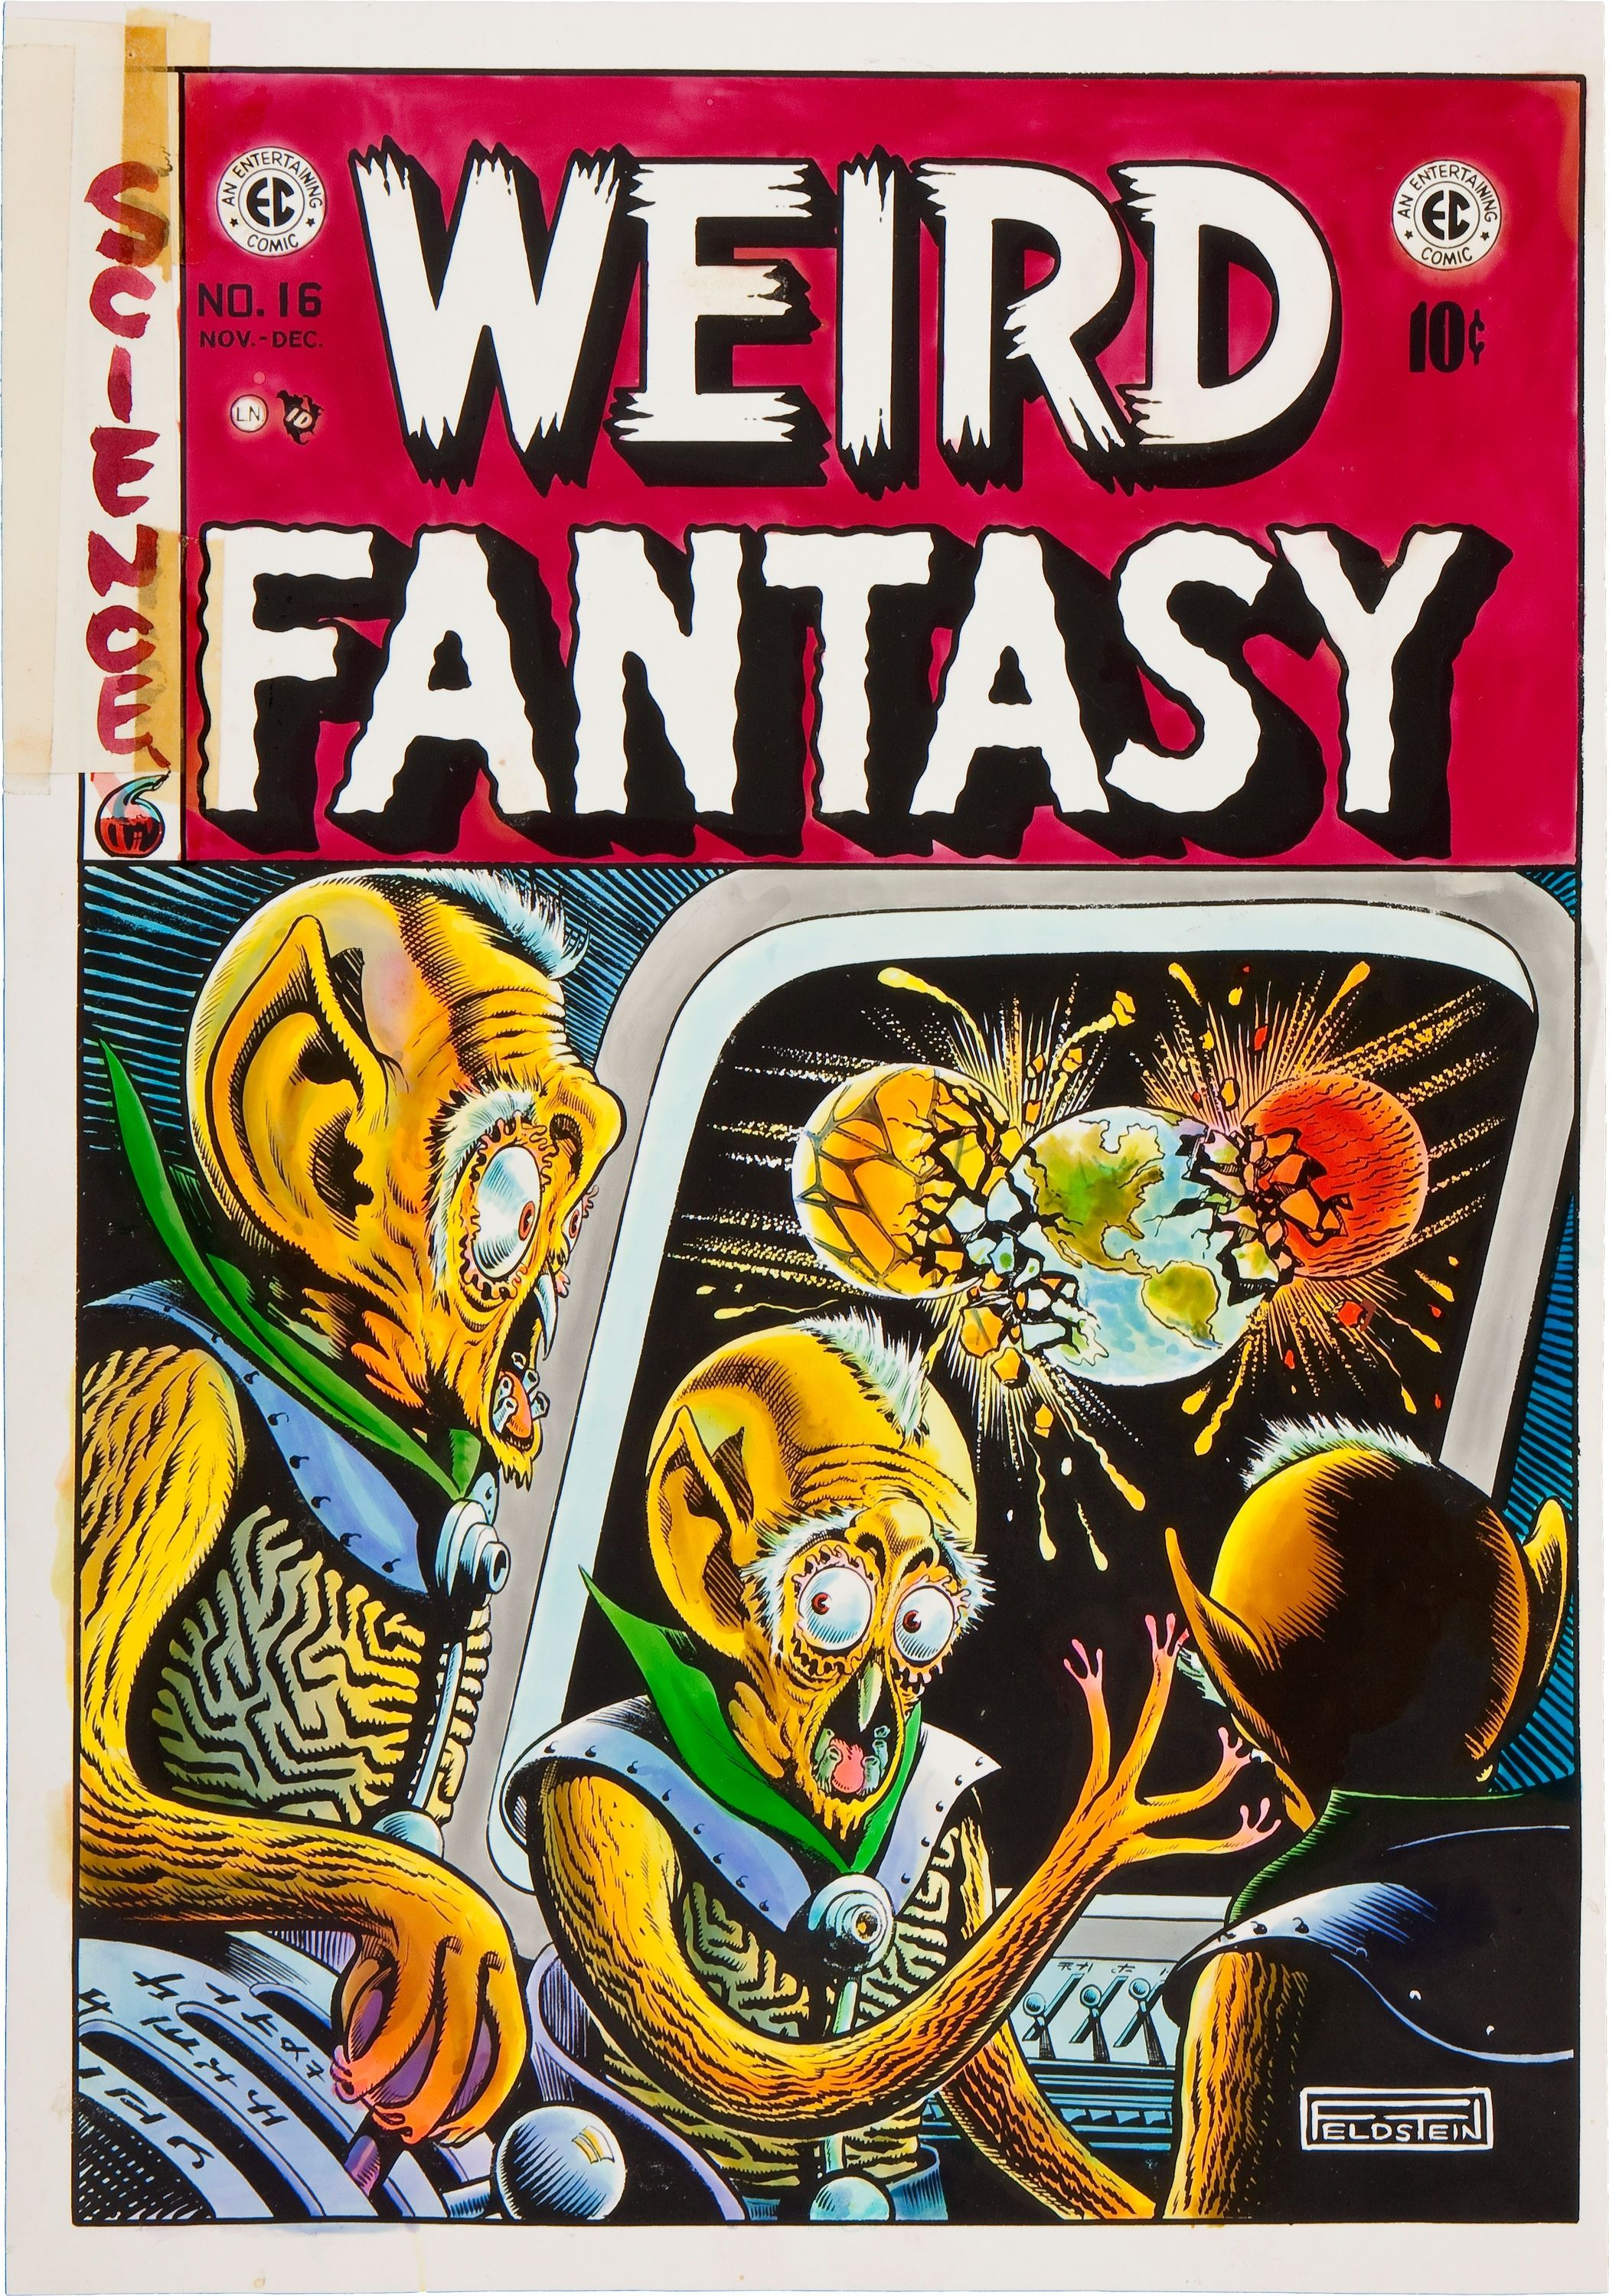 Couverture de Weird Fantasy n°16 © 1950, EC Comics, William Gaines et Al Feldstein